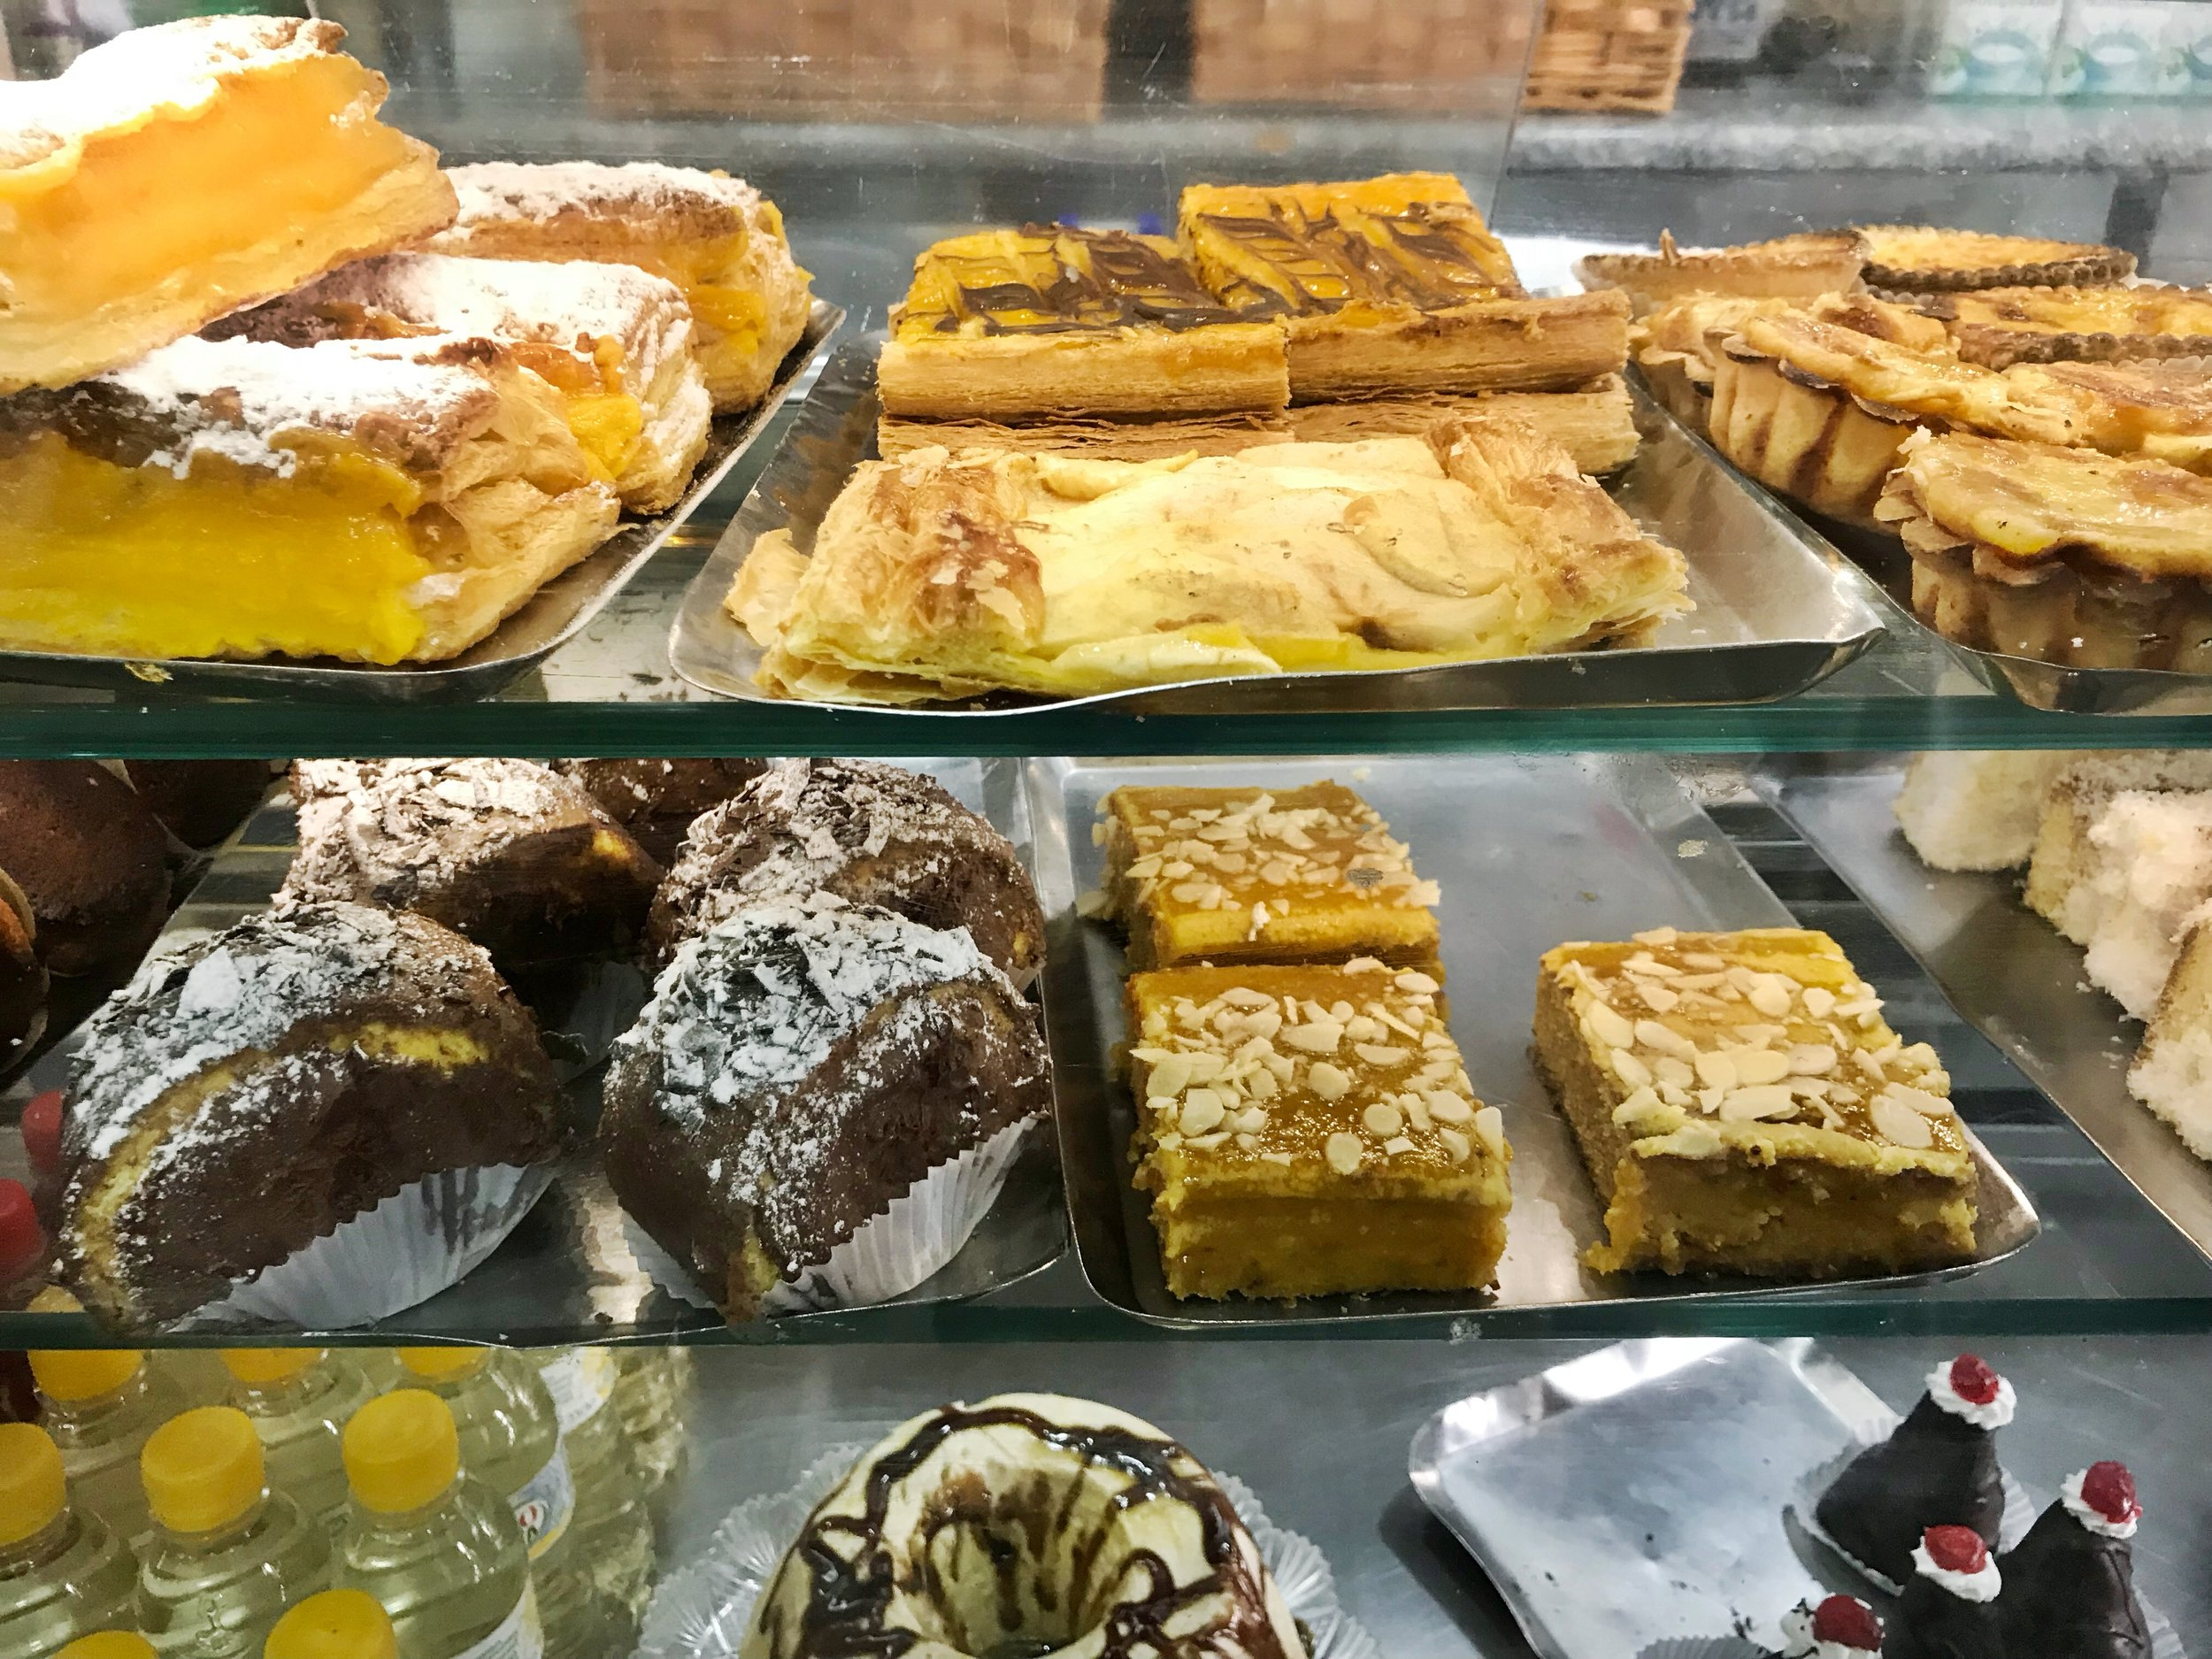 24hourkitchen-travel-guide-to-portuguese-pastries-pastelaria-lisbon-portugal